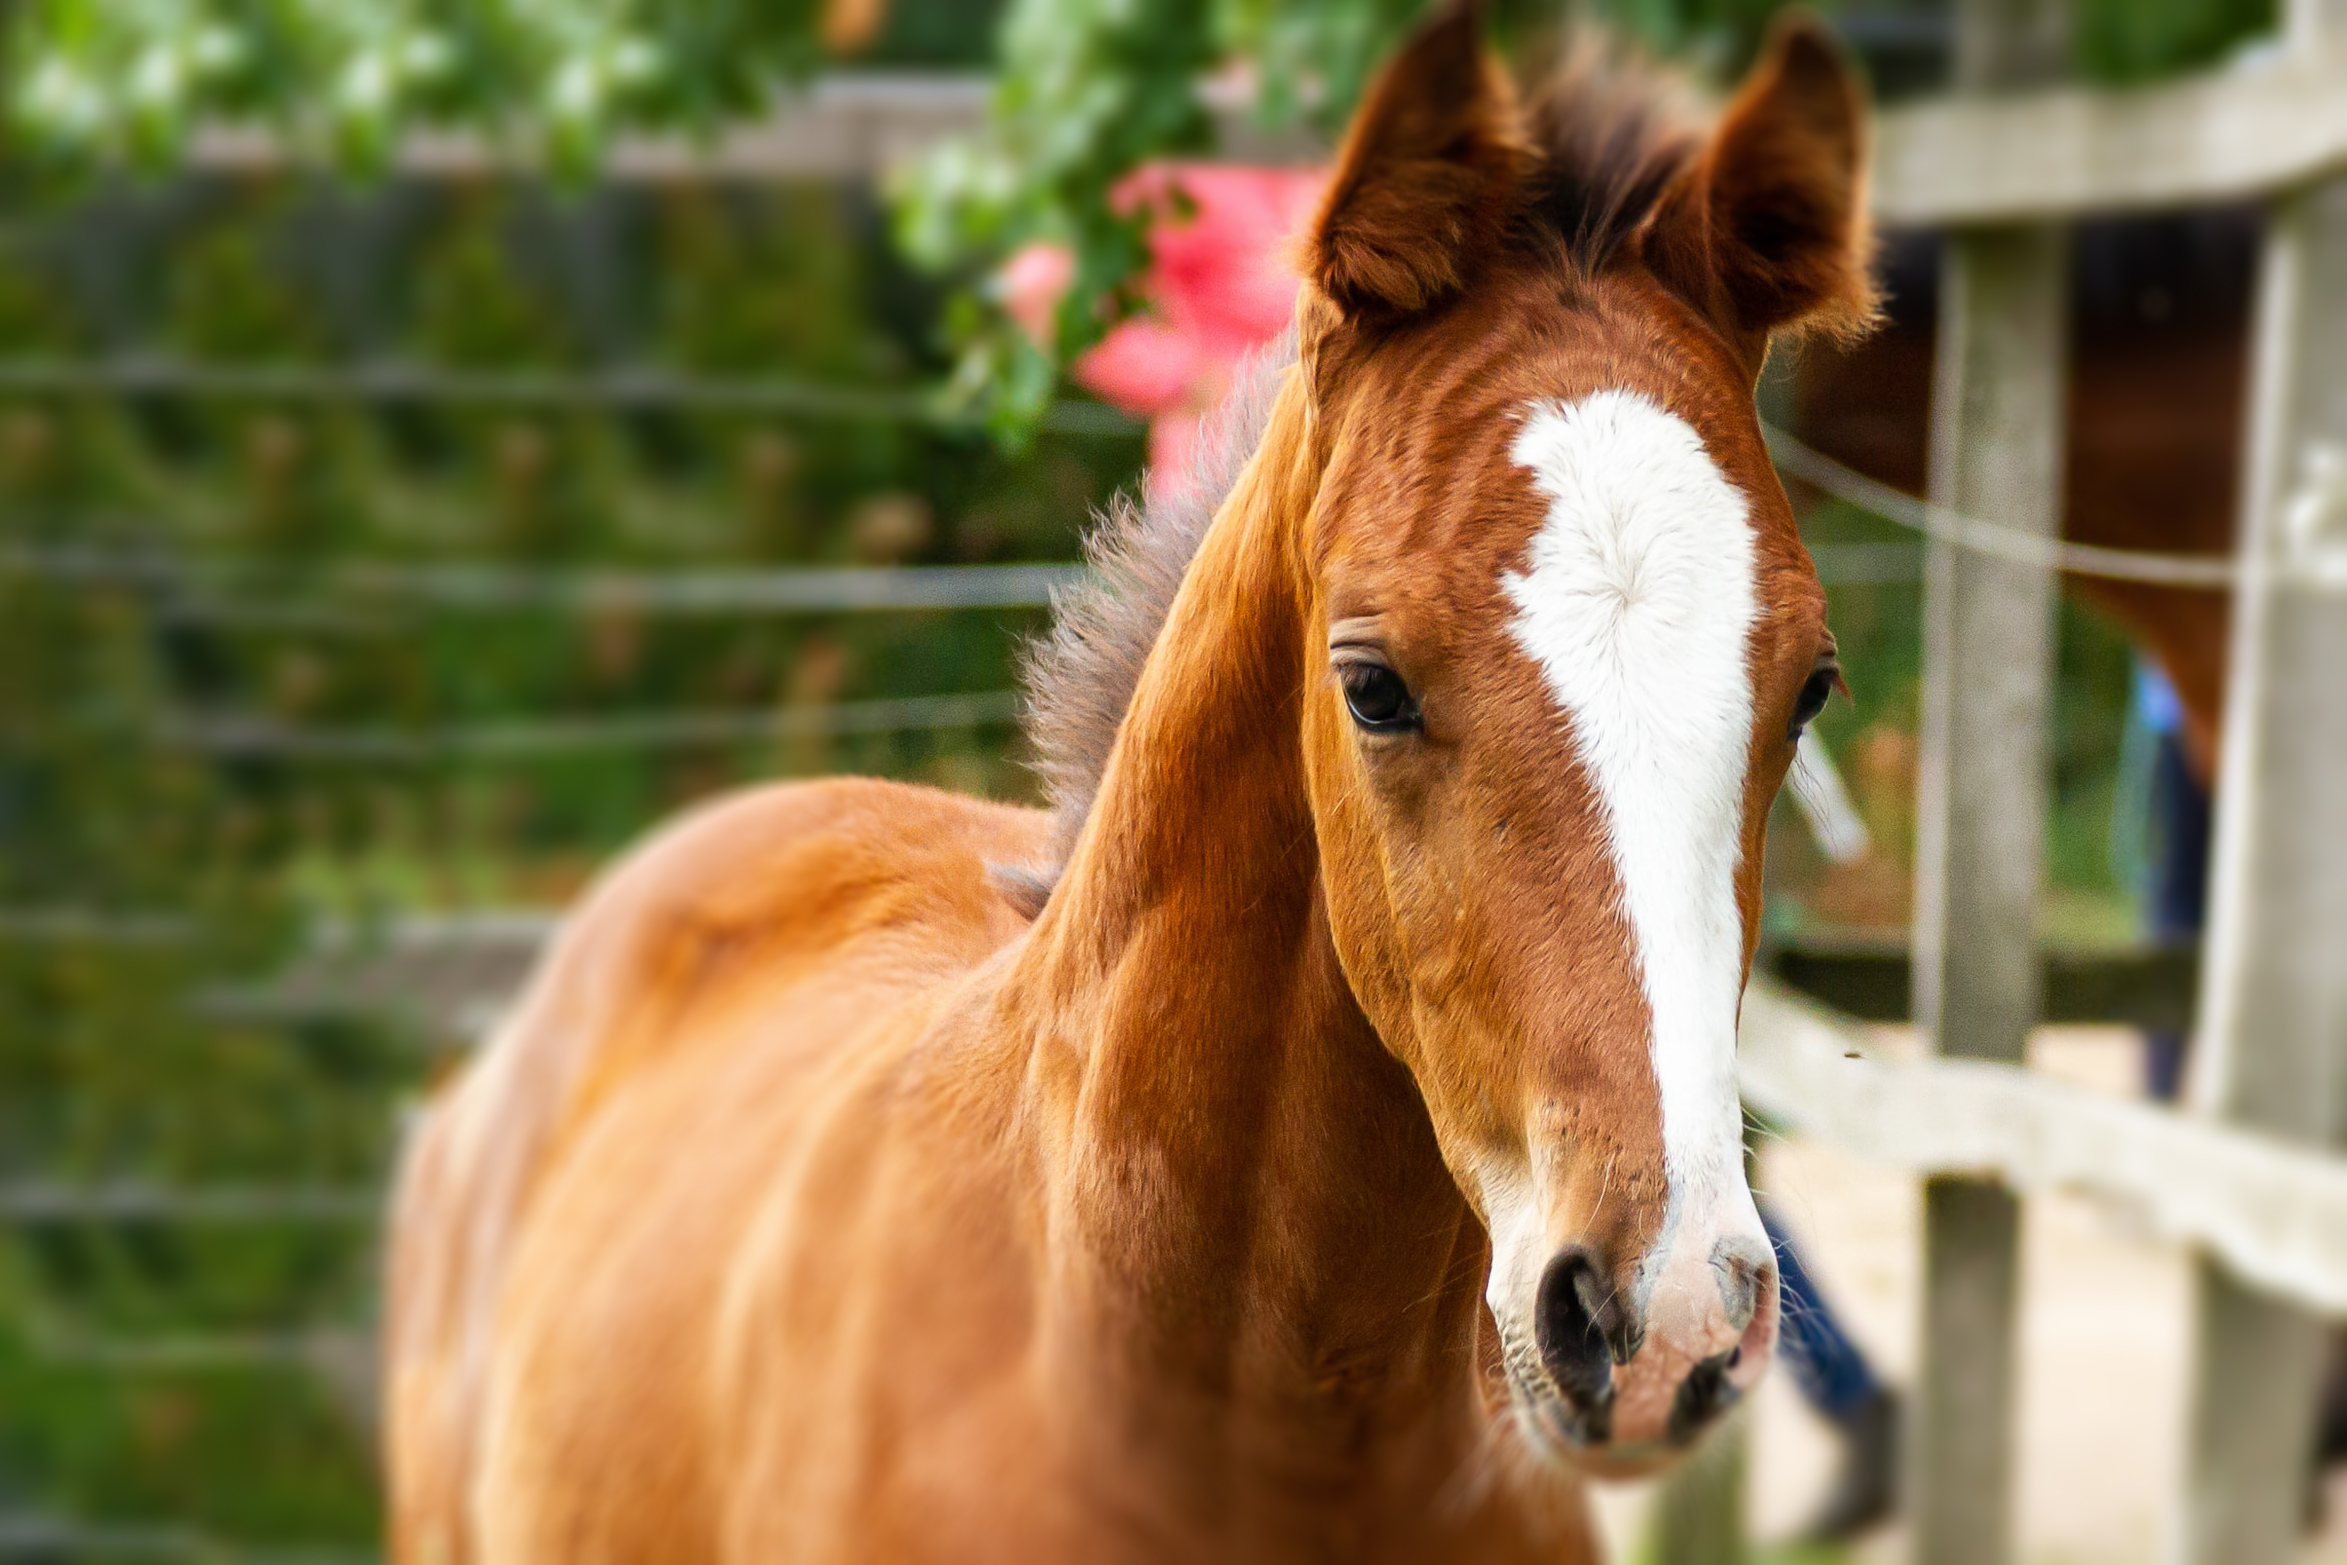 A young horse.